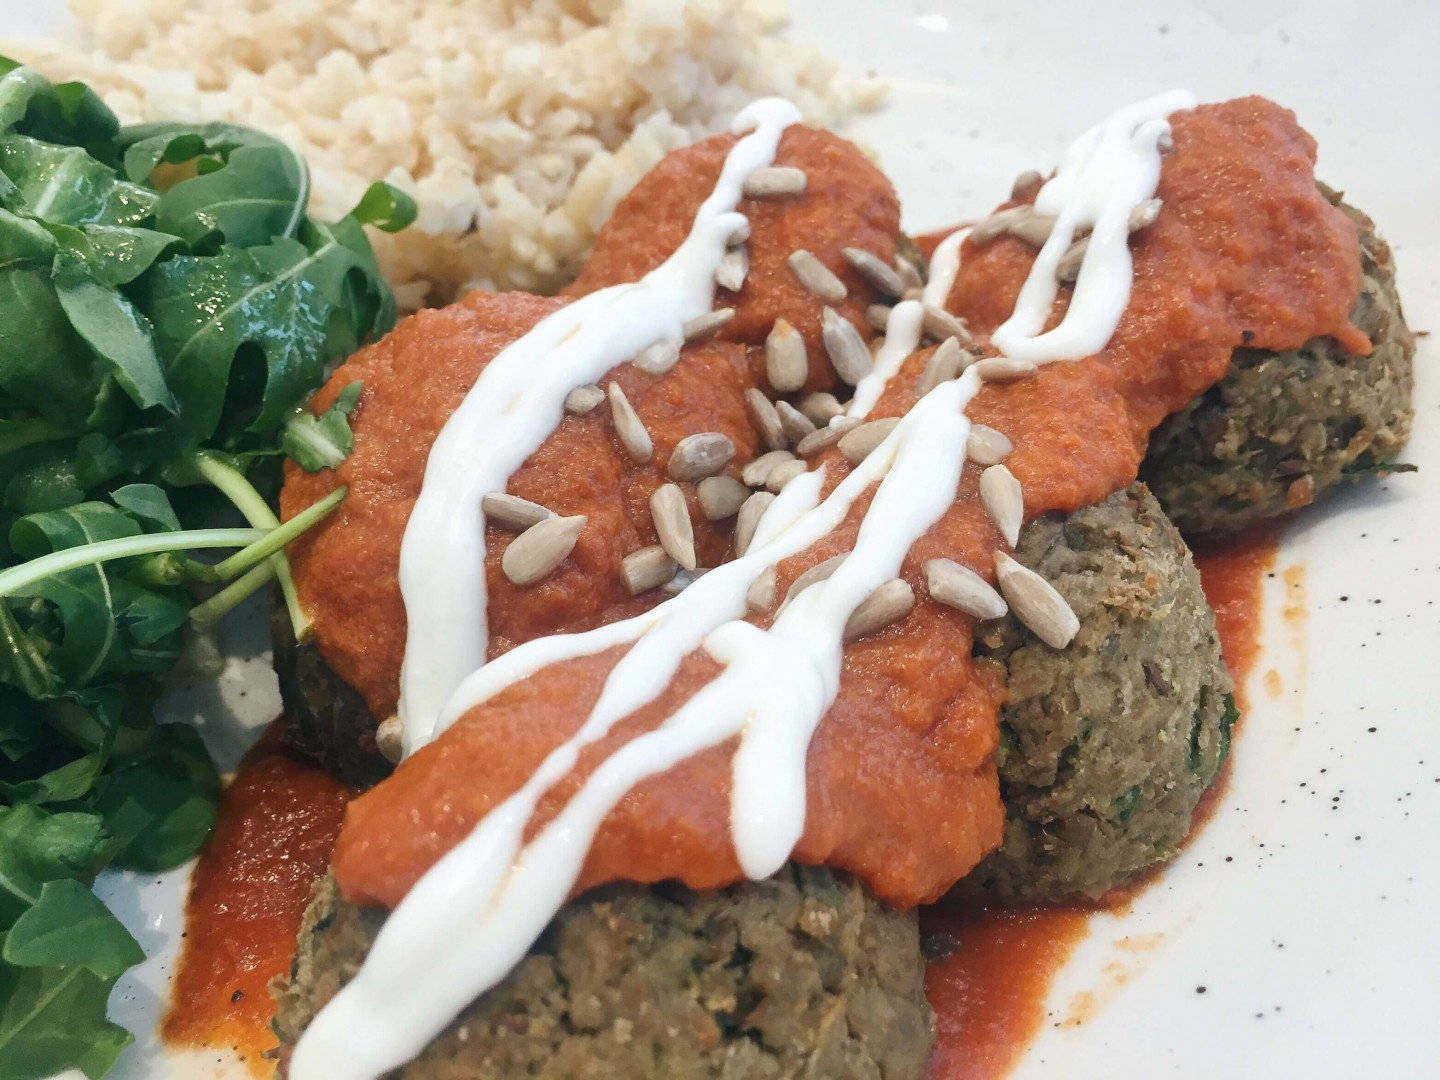 The lentil and onion balls with cashew cream are vegan and utterly delicious! I loved The Mae Deli!